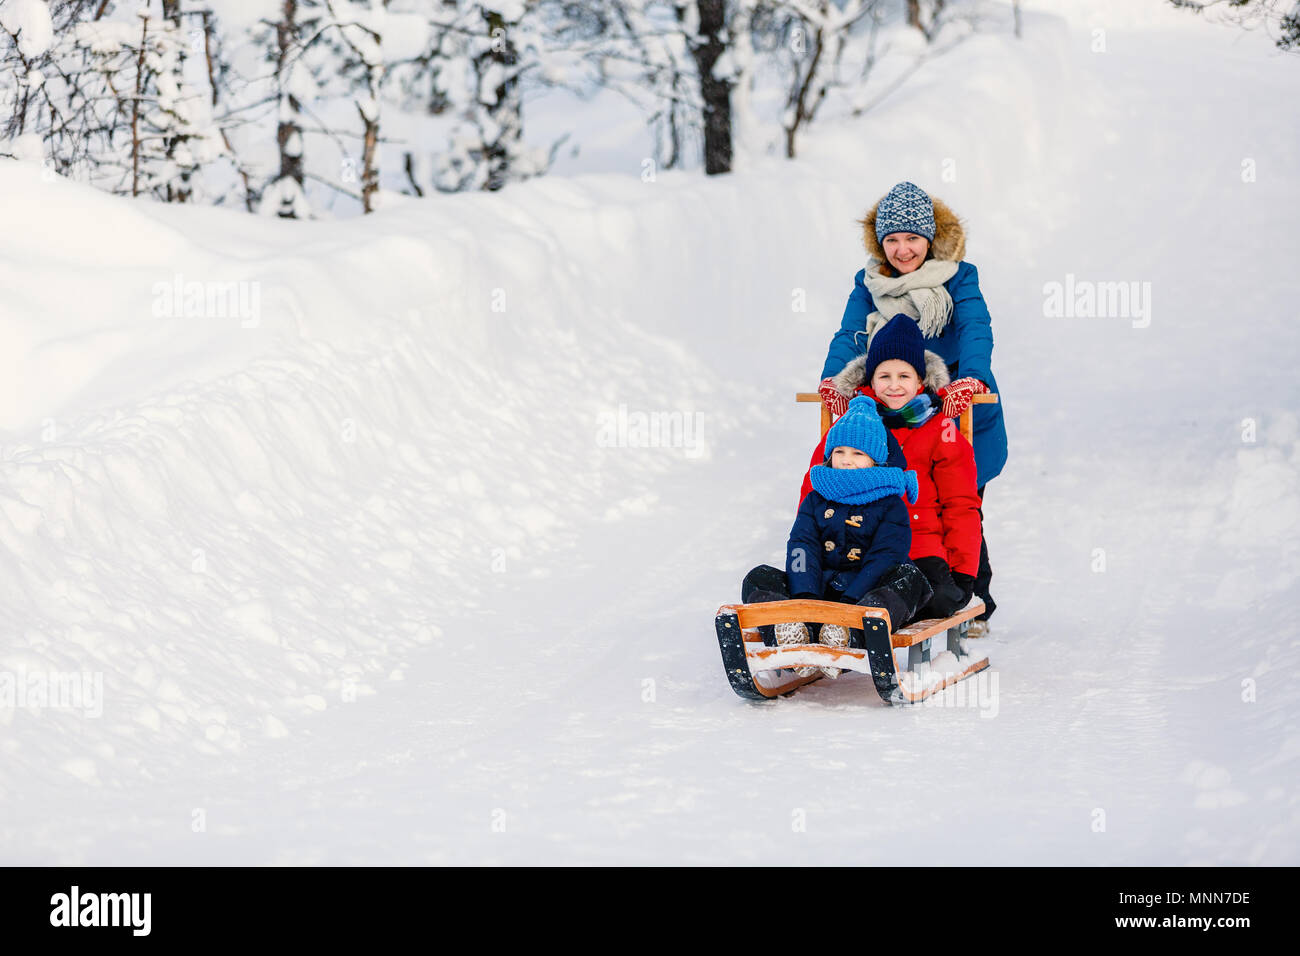 Beautiful family of mother and kids enjoying snowy winter day outdoors having fun sledging - Stock Image